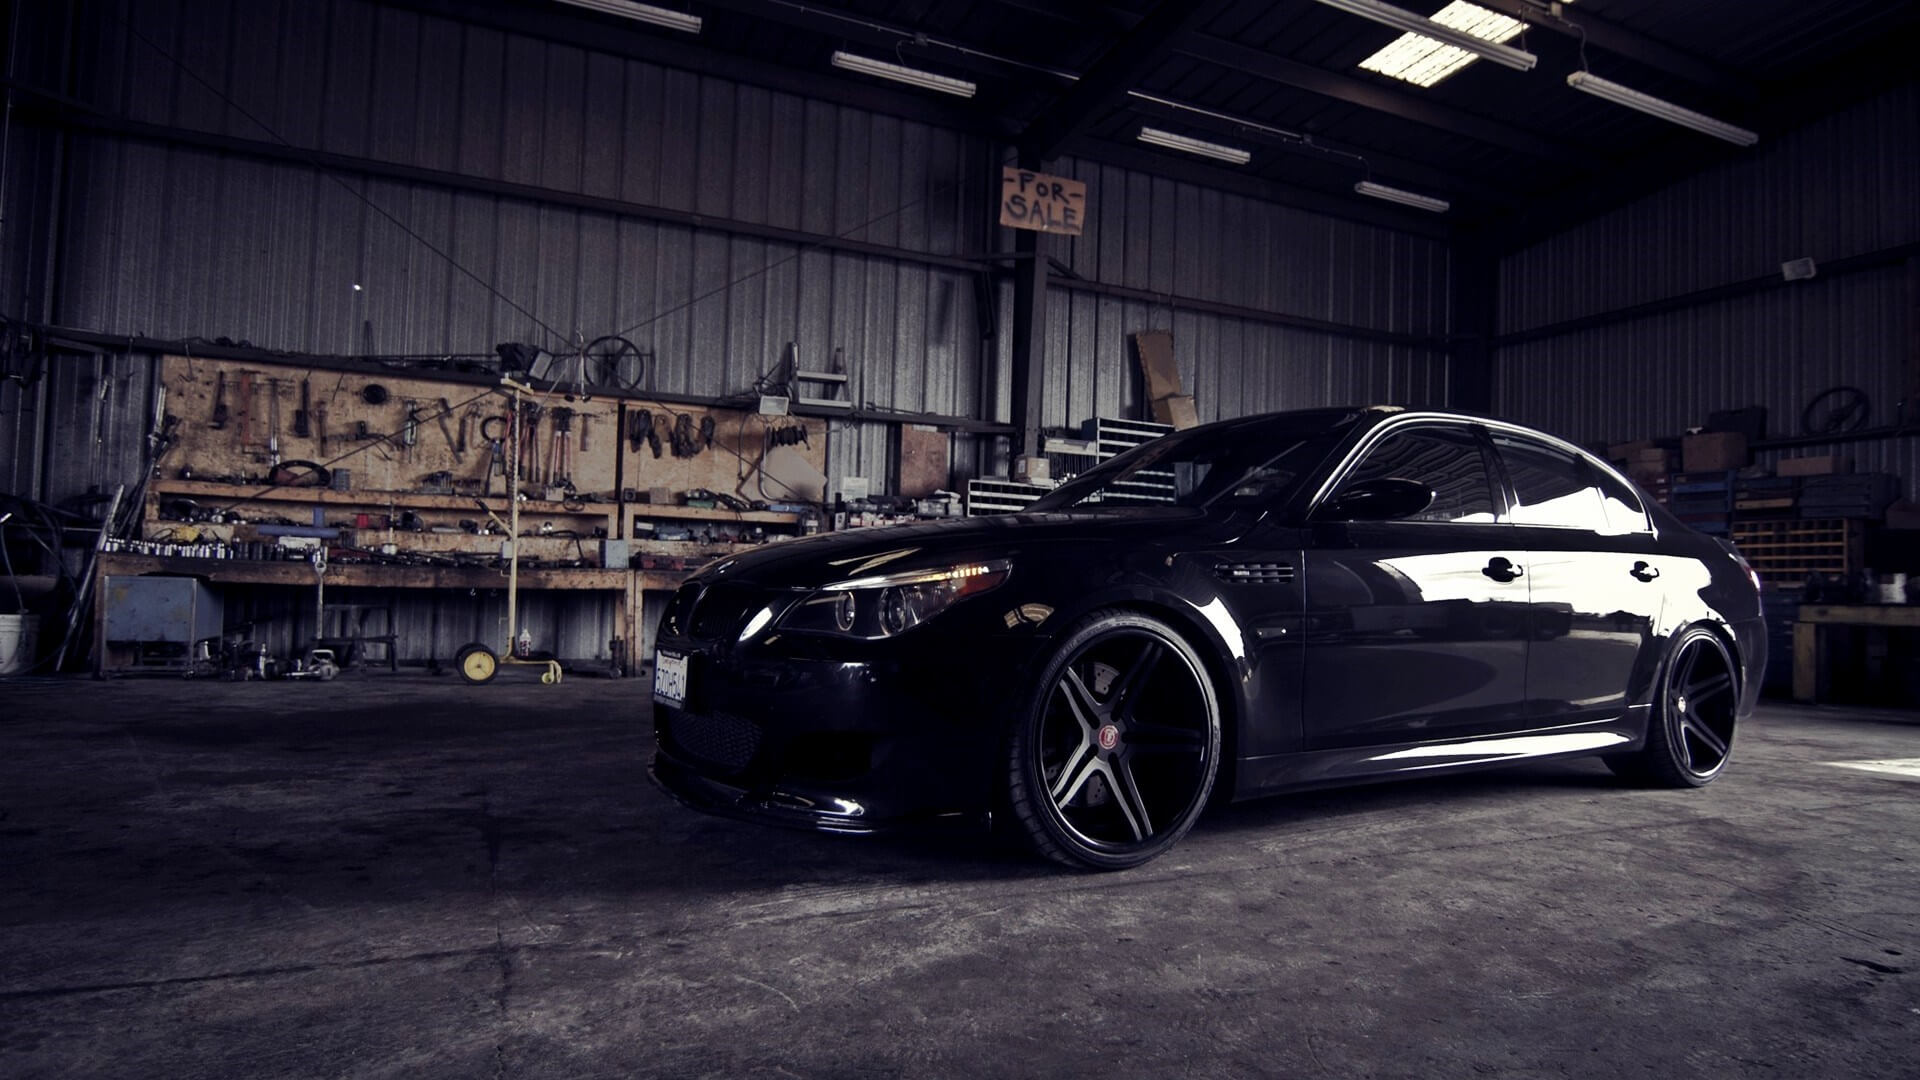 Bmw M5 Garage Hd Wallpaper Car Mechanic Service Werribee